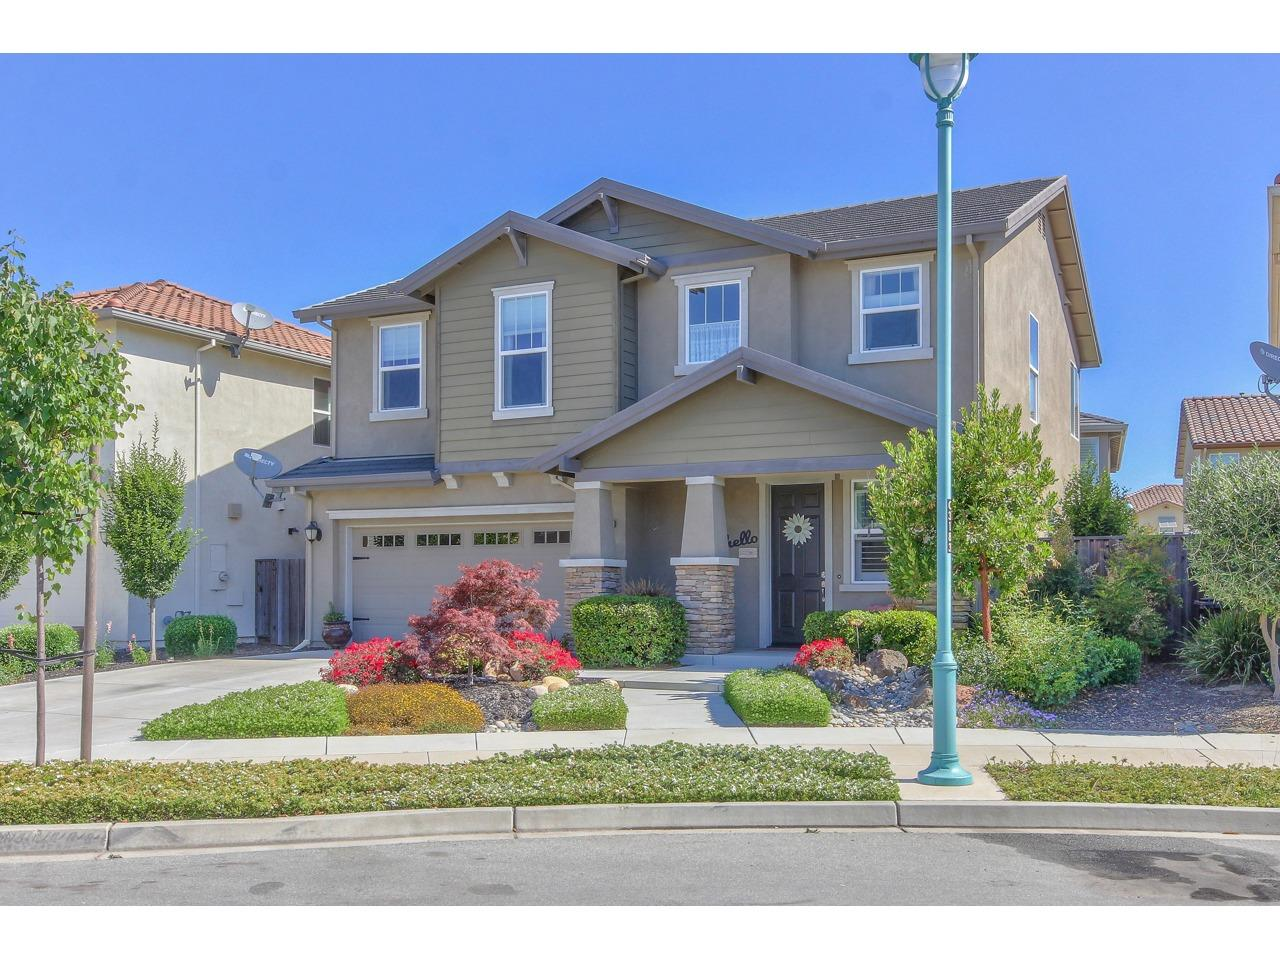 Detail Gallery Image 1 of 1 For 1125 Siena Way, Salinas, CA 93905 - 4 Beds | 2/1 Baths